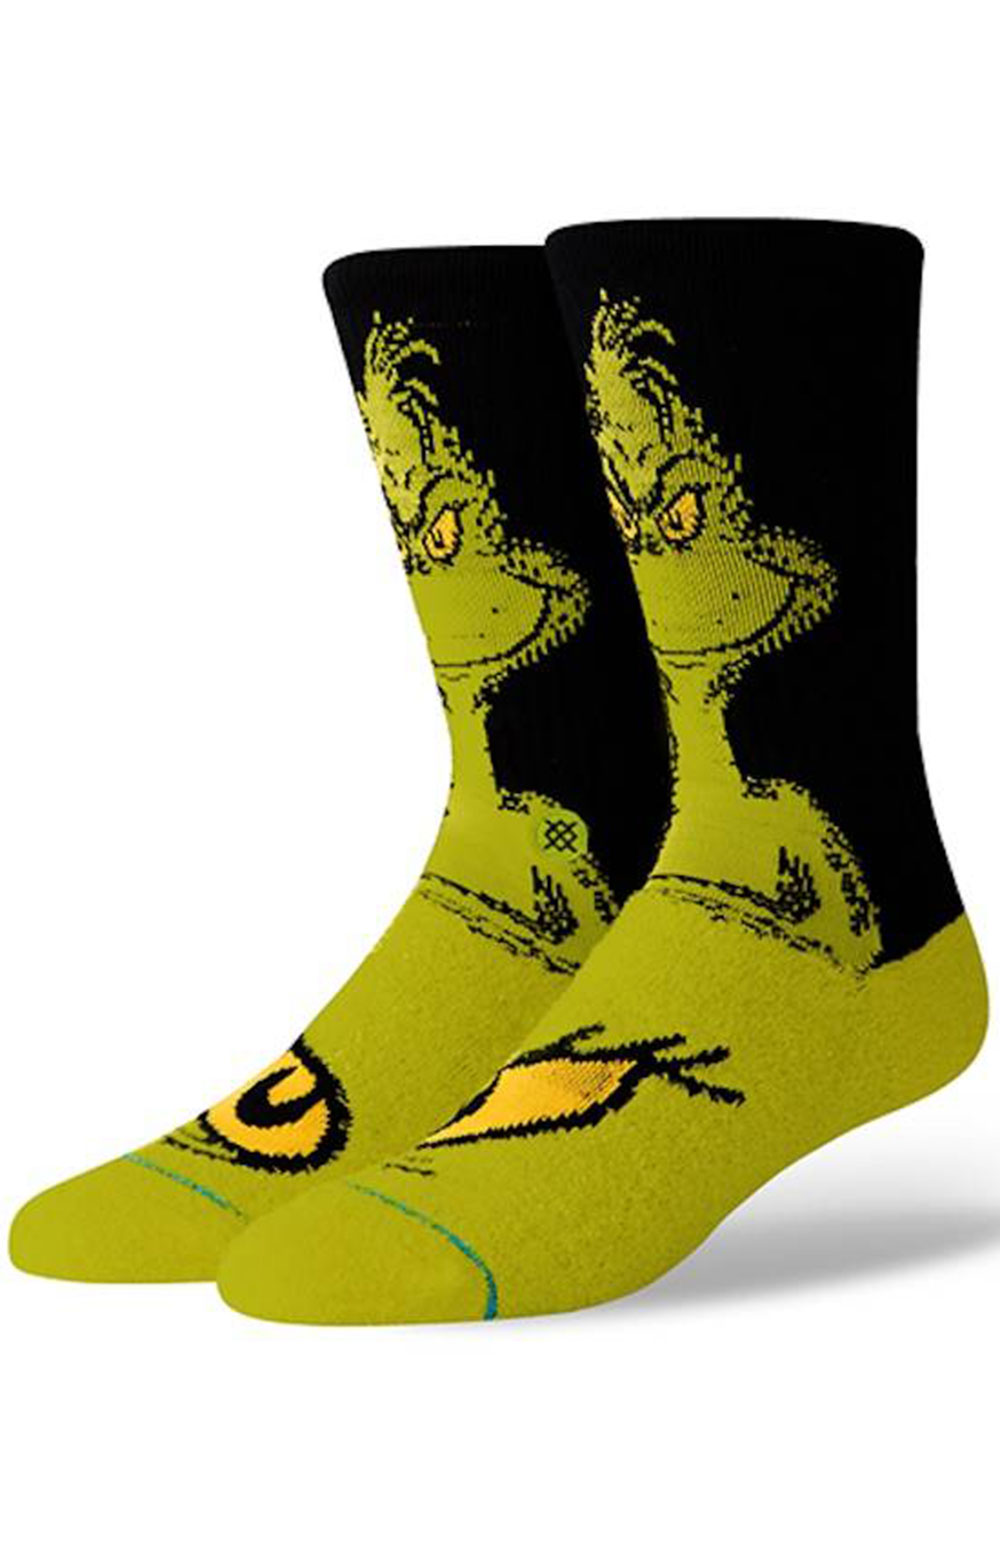 The Grinch Socks